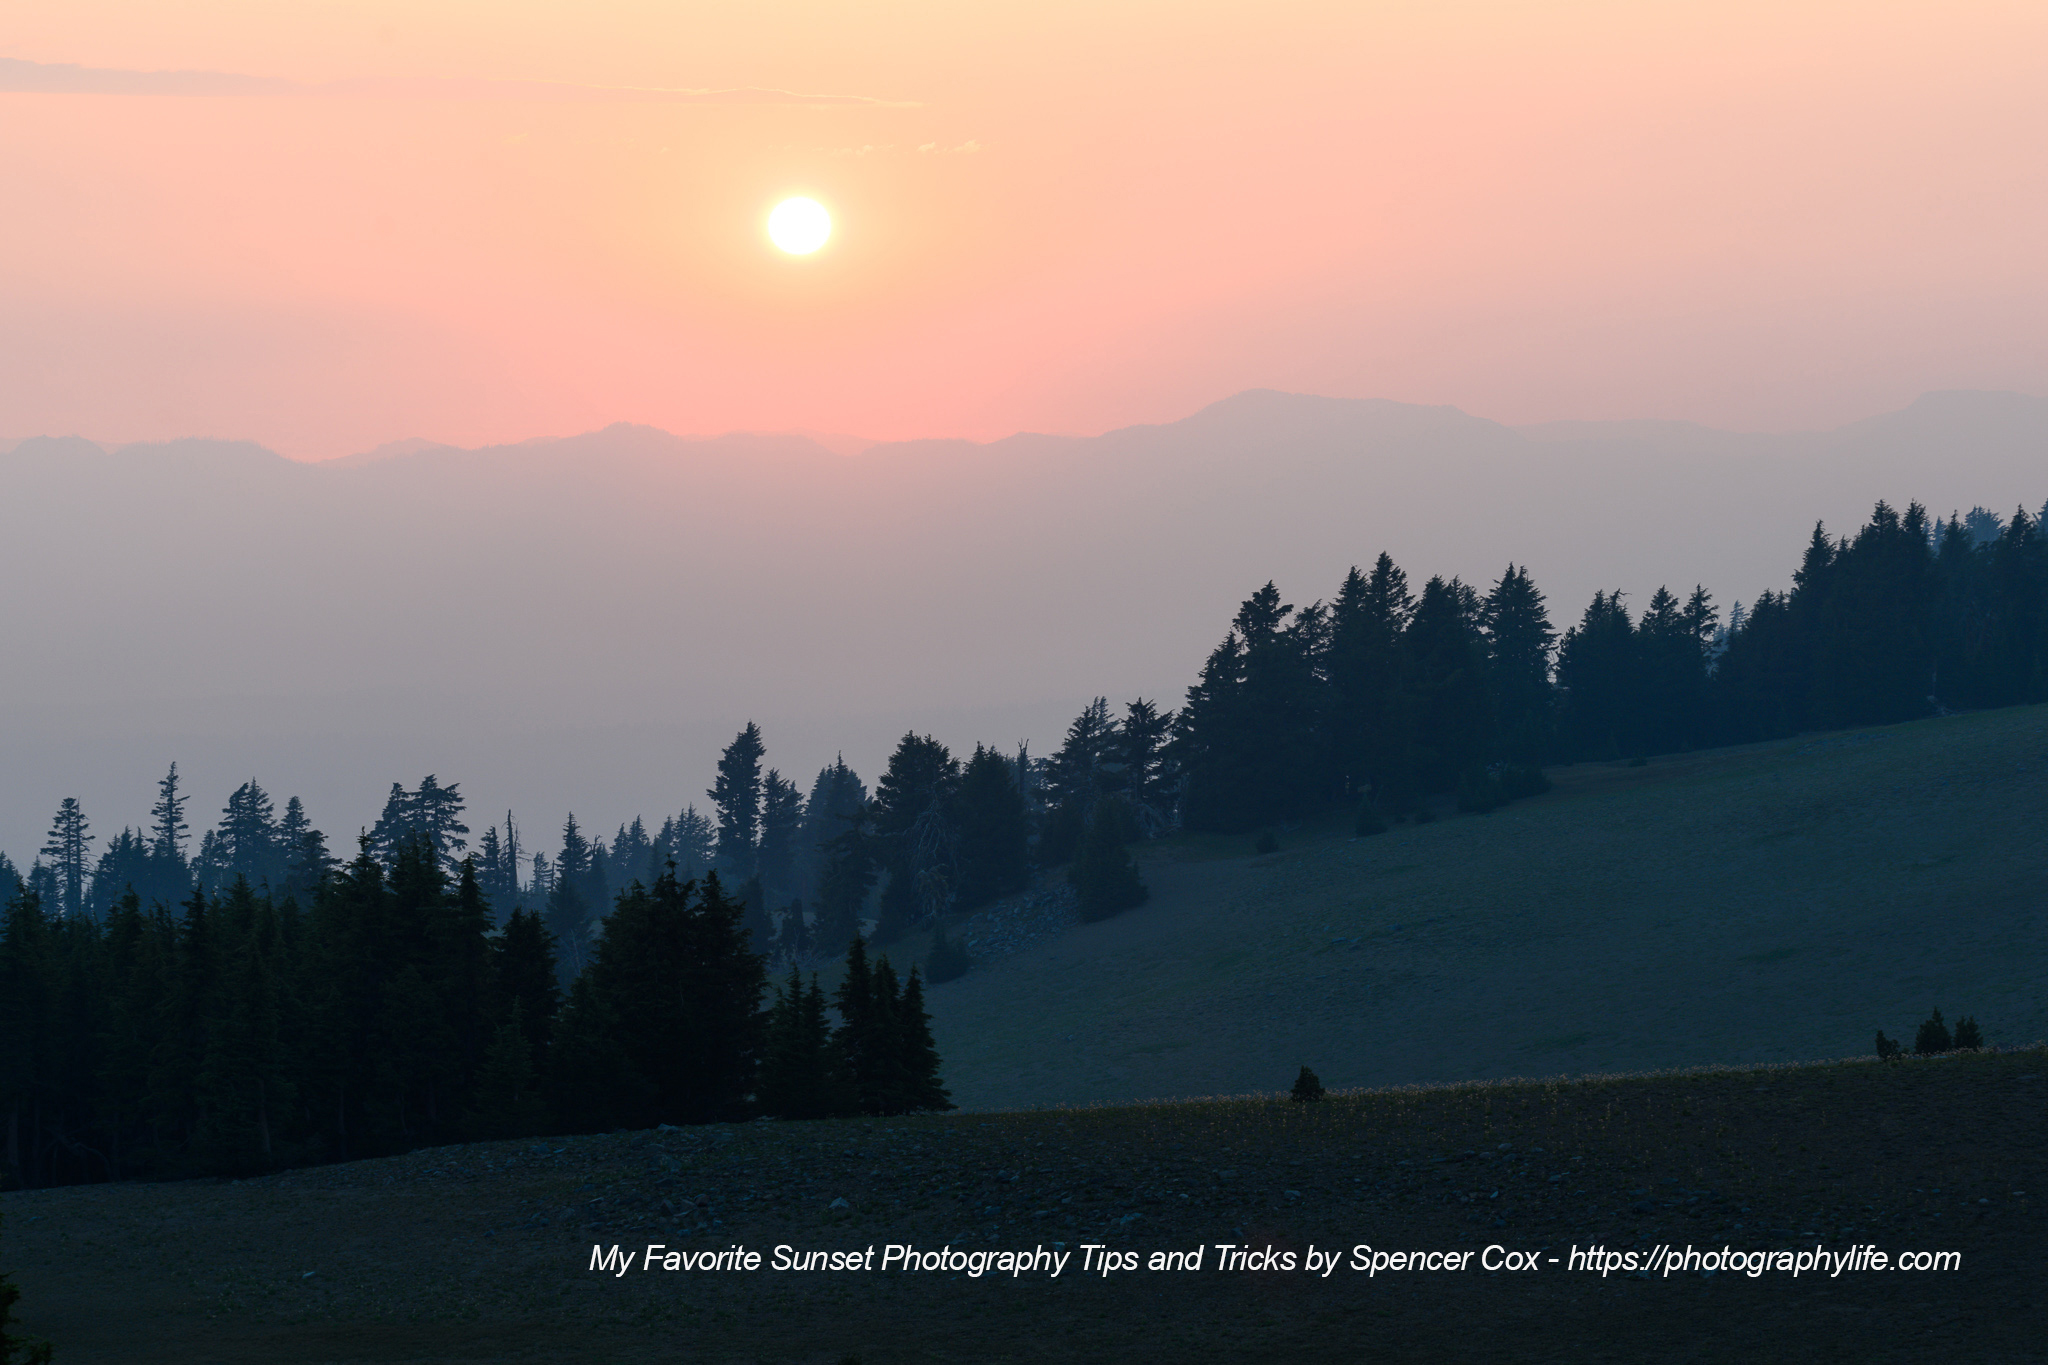 My Favorite Sunset Photography Tips and Tricks by Spencer Cox - https://photographylife.com